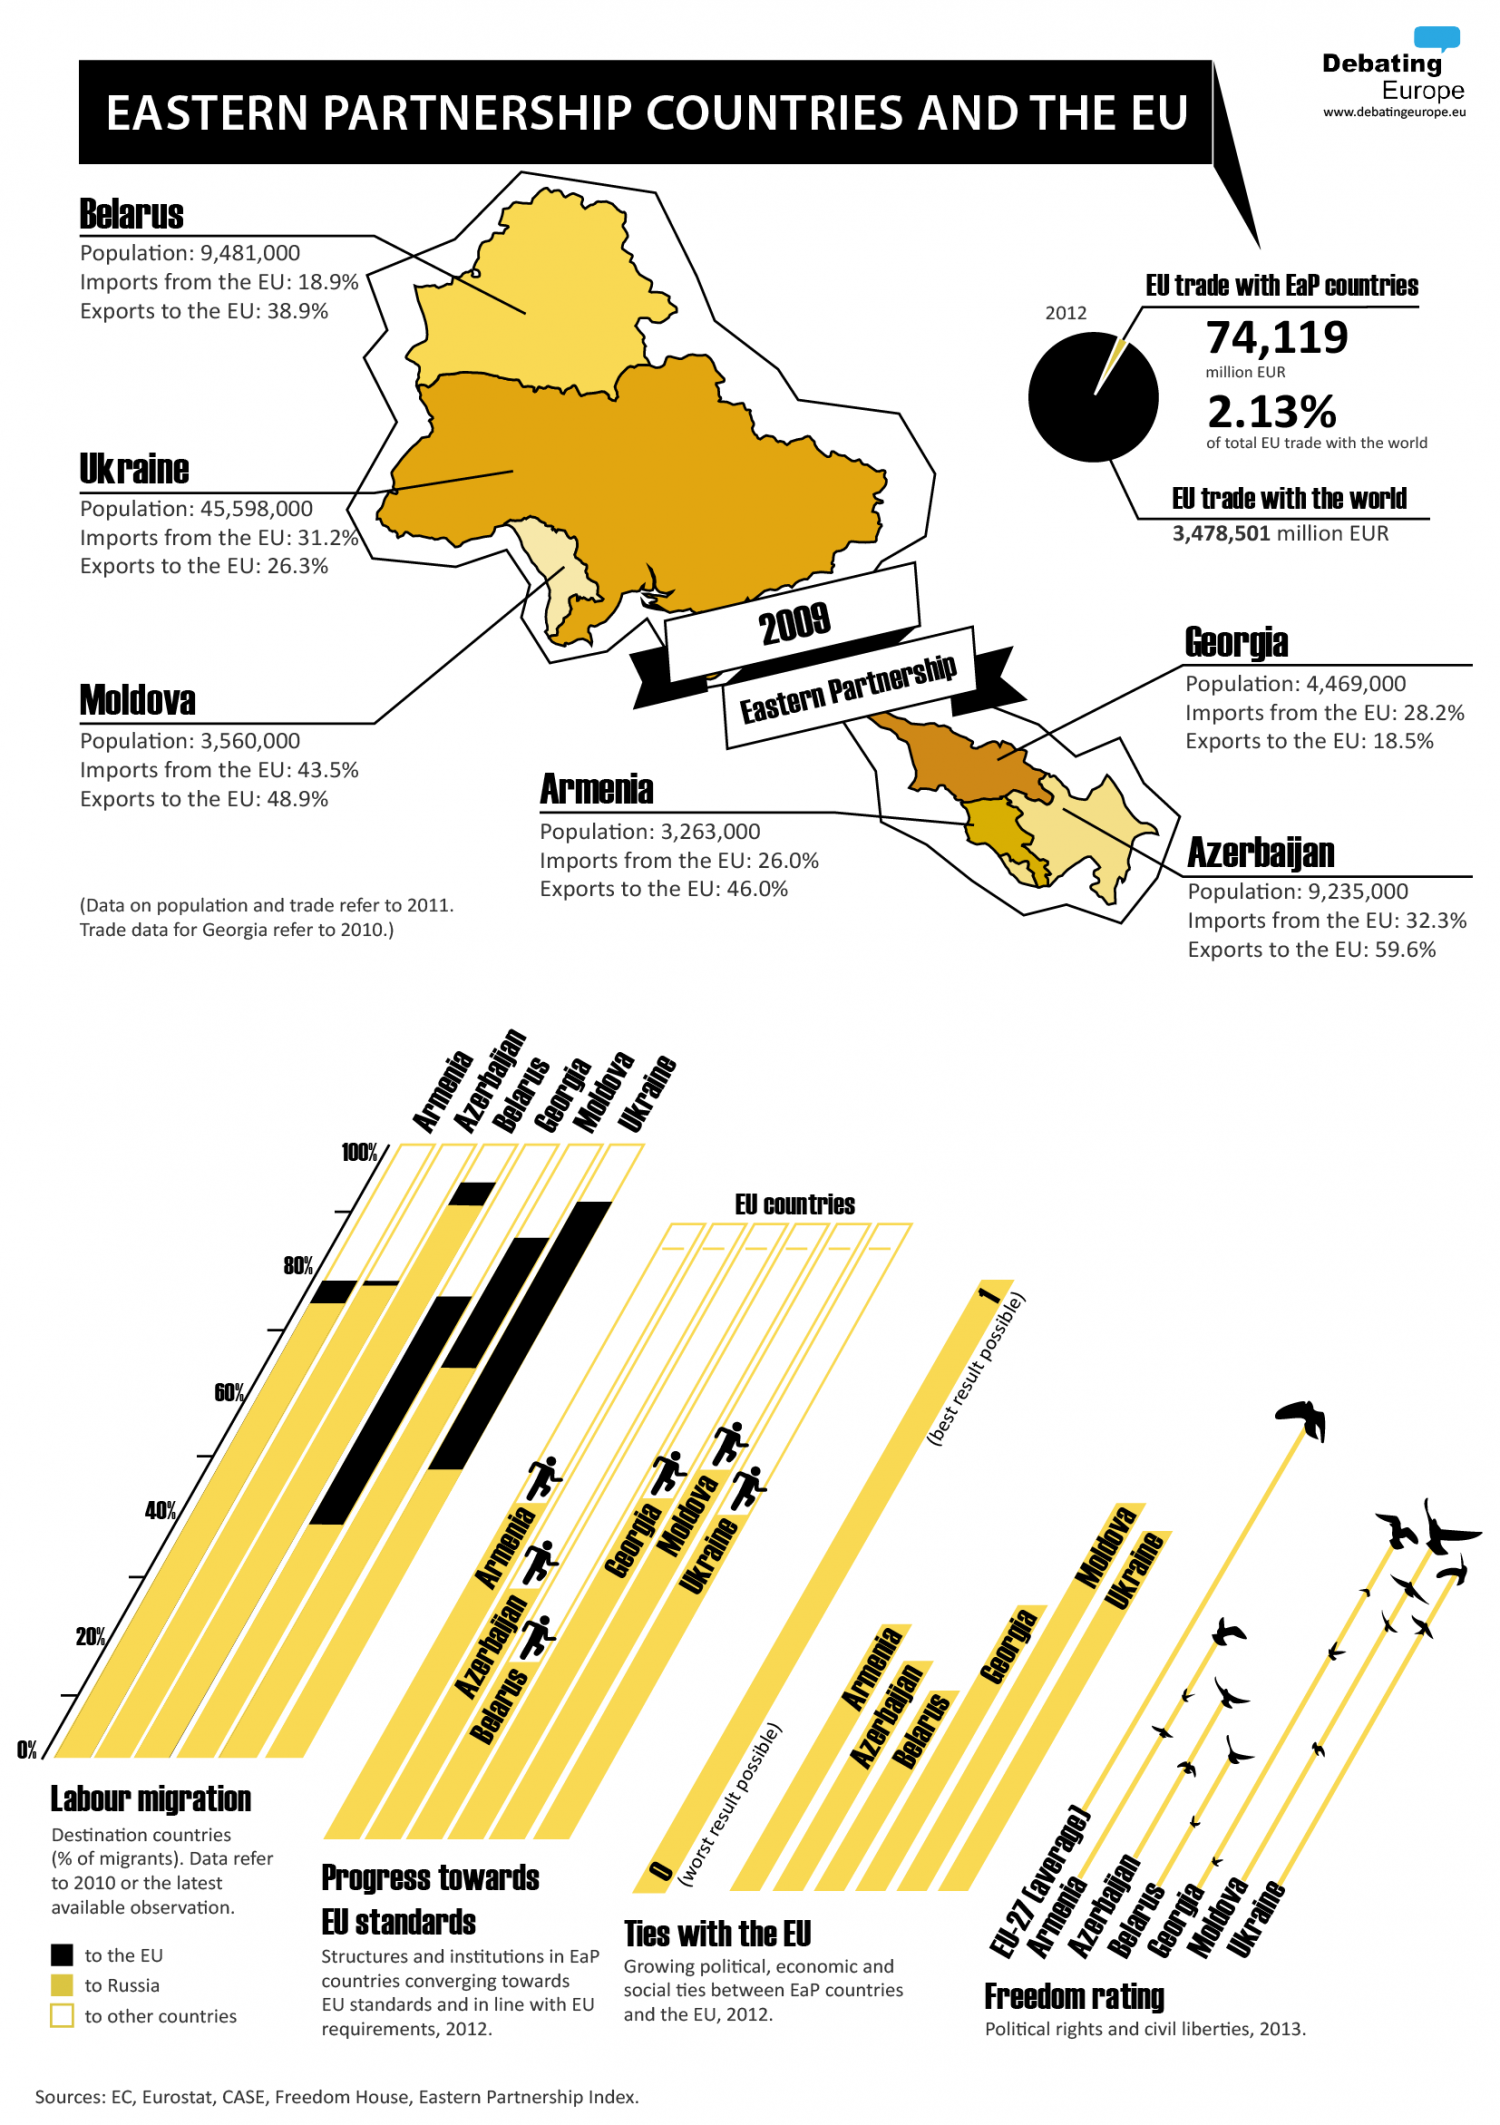 Eastern Partnership Countries and the EU Infographic